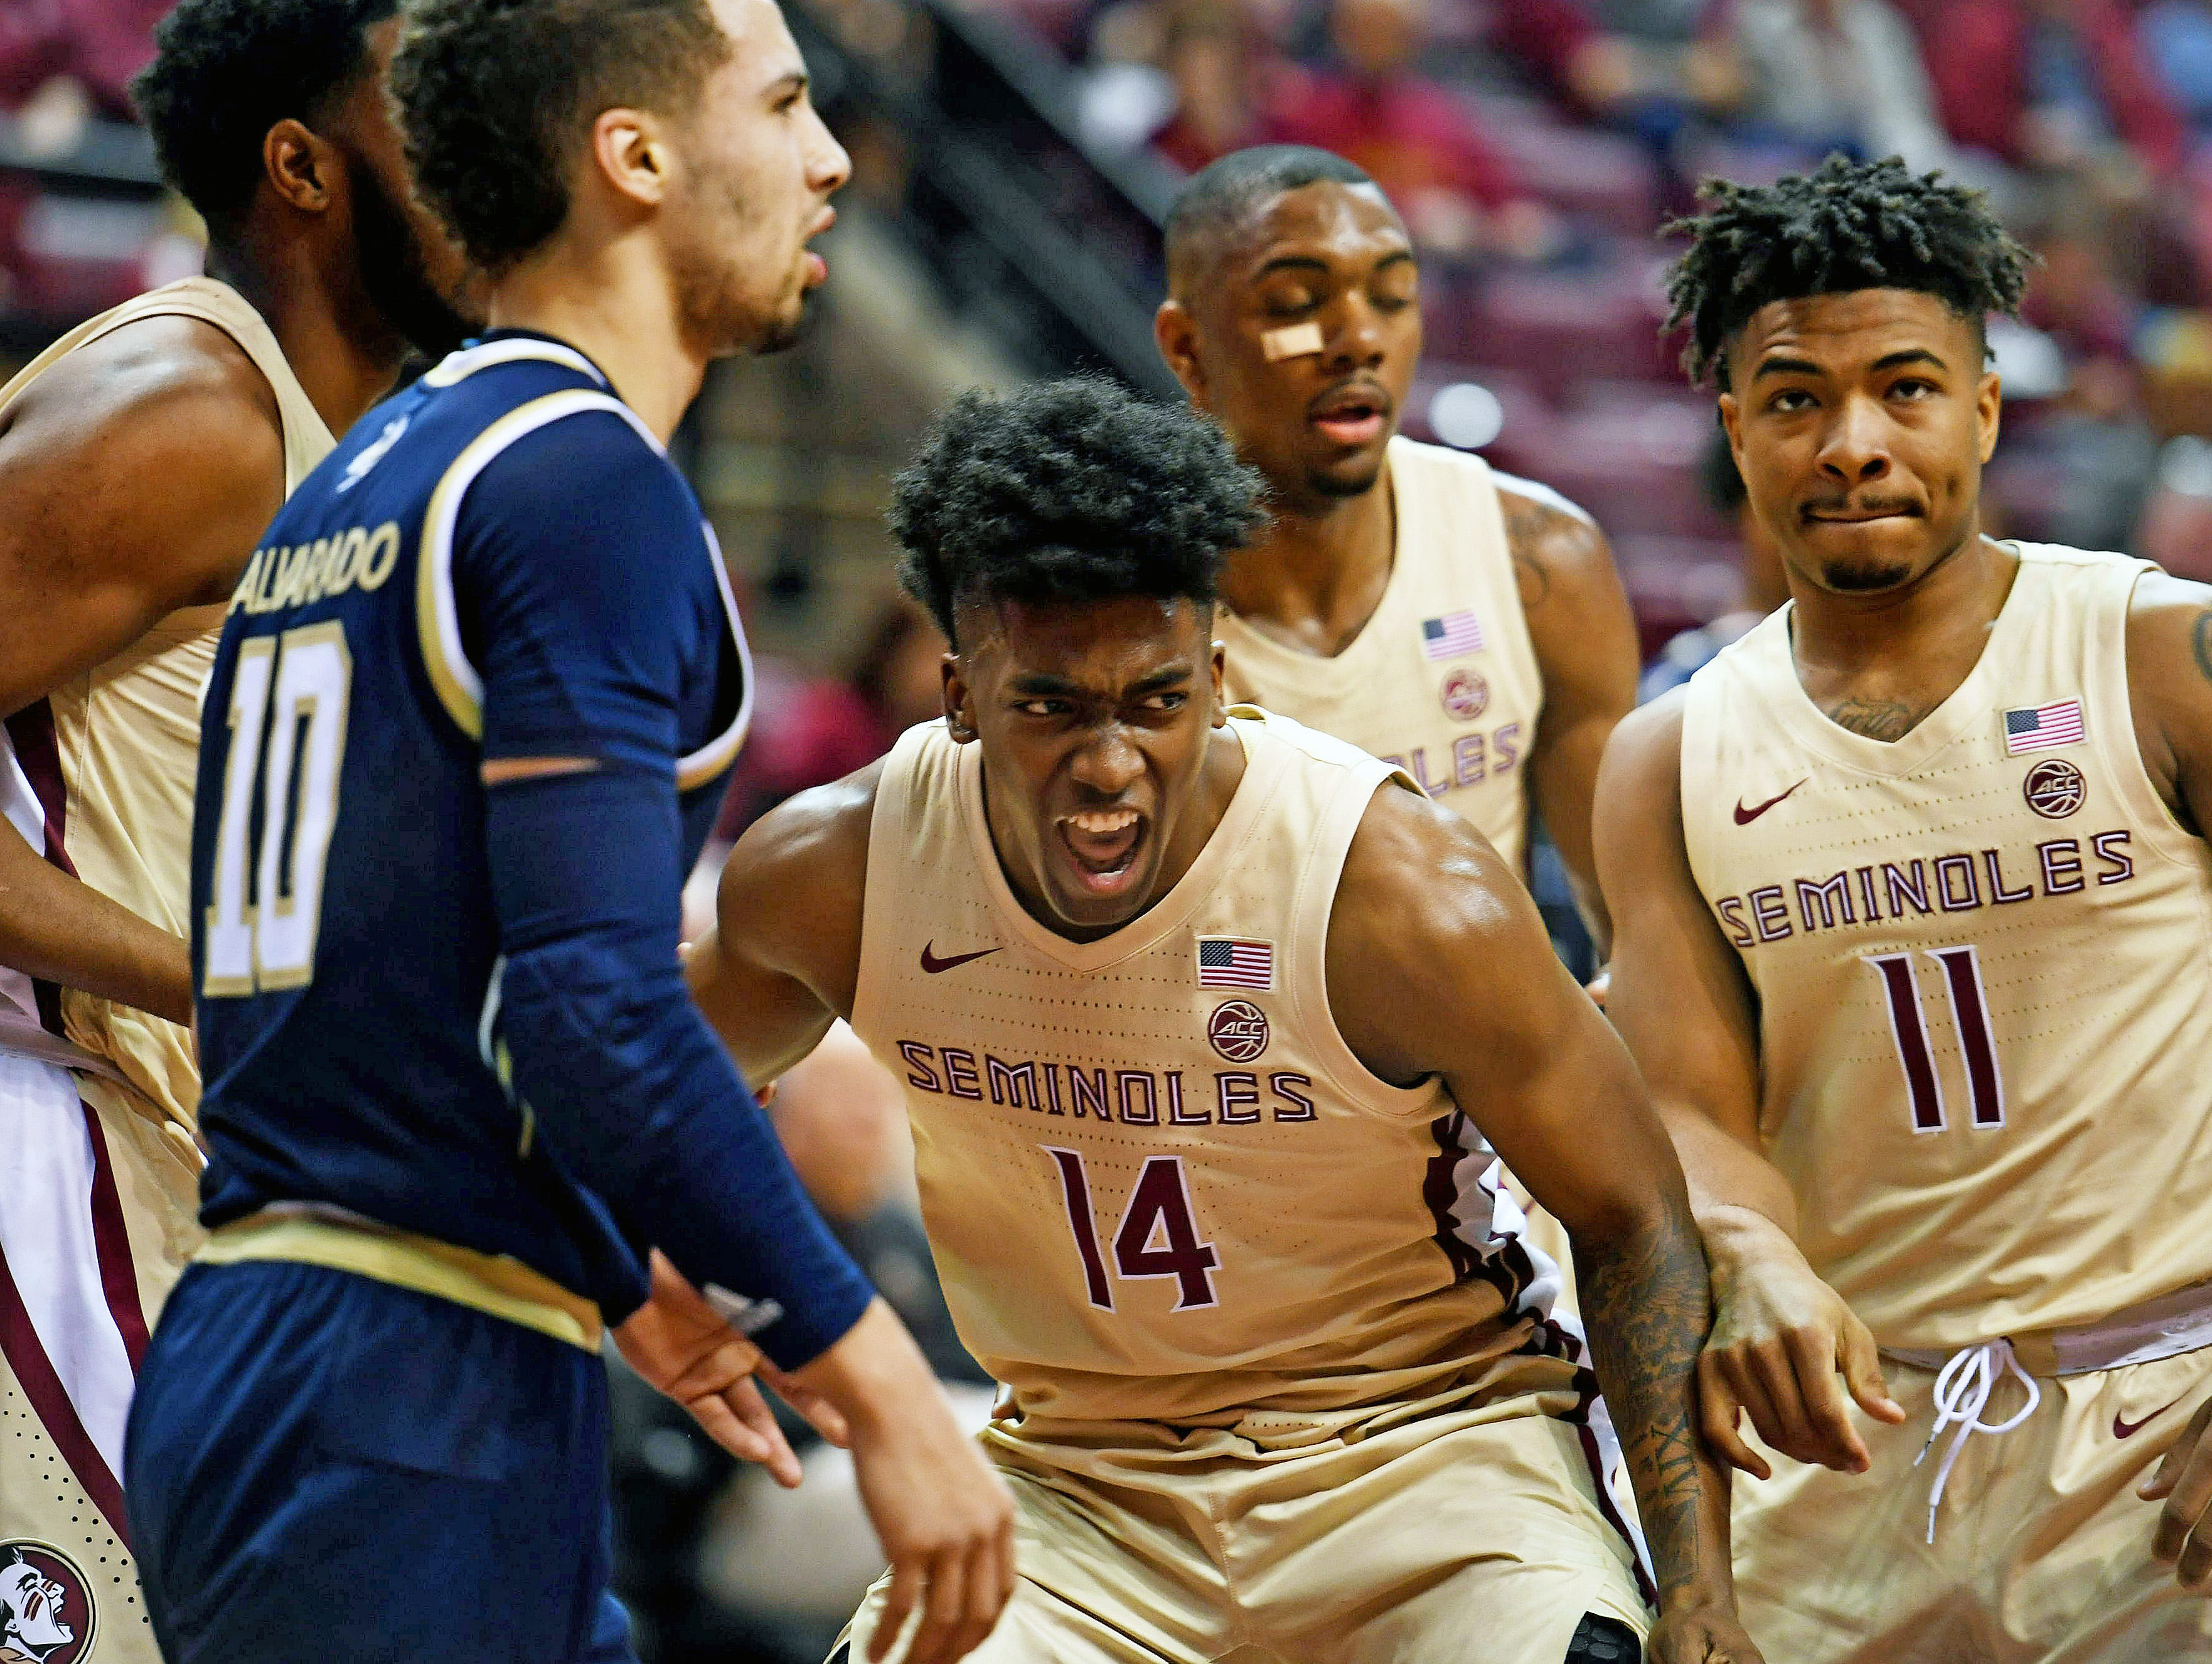 Feb 2, 2019; Tallahassee, FL, USA; Florida State Seminoles guard Terance Mann (14) reacts after a play during the first half against the Georgia Tech Yellow Jackets at Donald L. Tucker Center. Mandatory Credit: Melina Myers-USA TODAY Sports